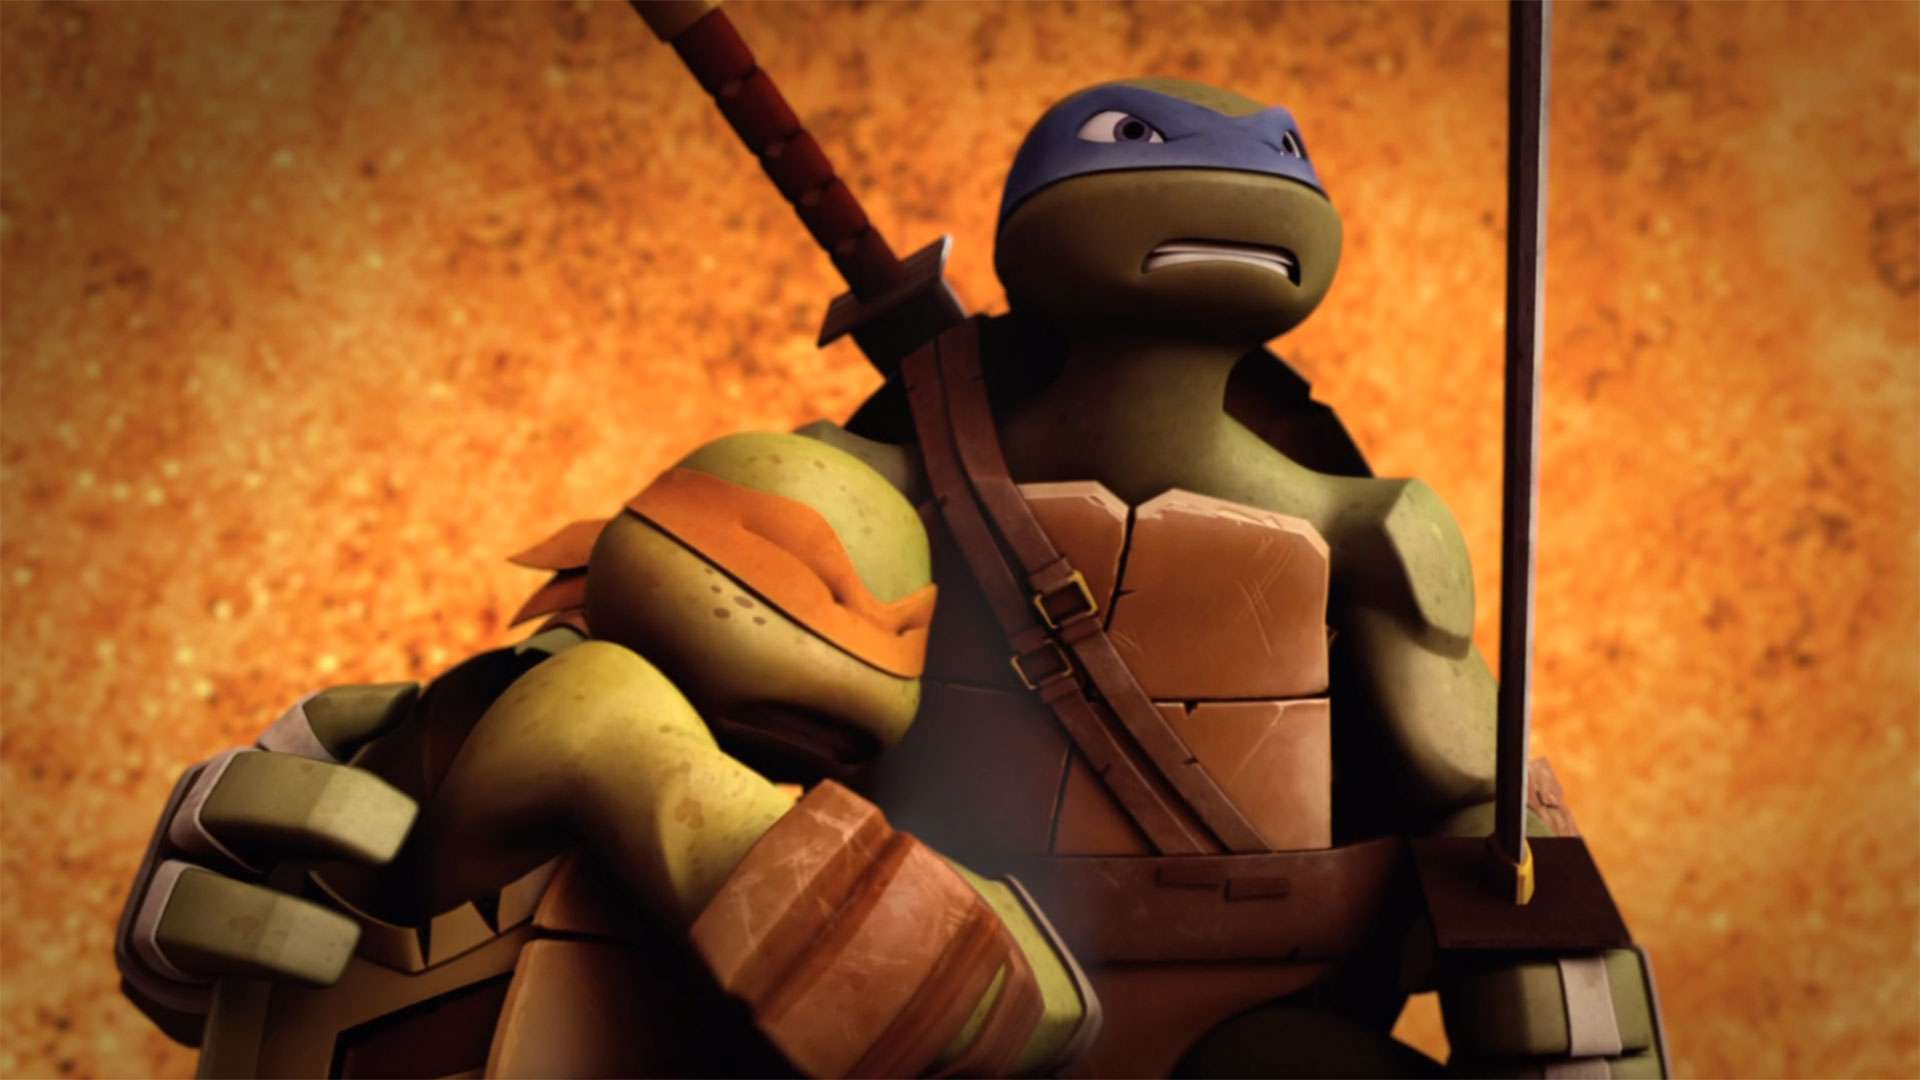 Te Teenage Mutant Ninja Turtles Tv Show - Teenage mutant ninja turtles full episodes scroll of the demodragon season 5 episode 501